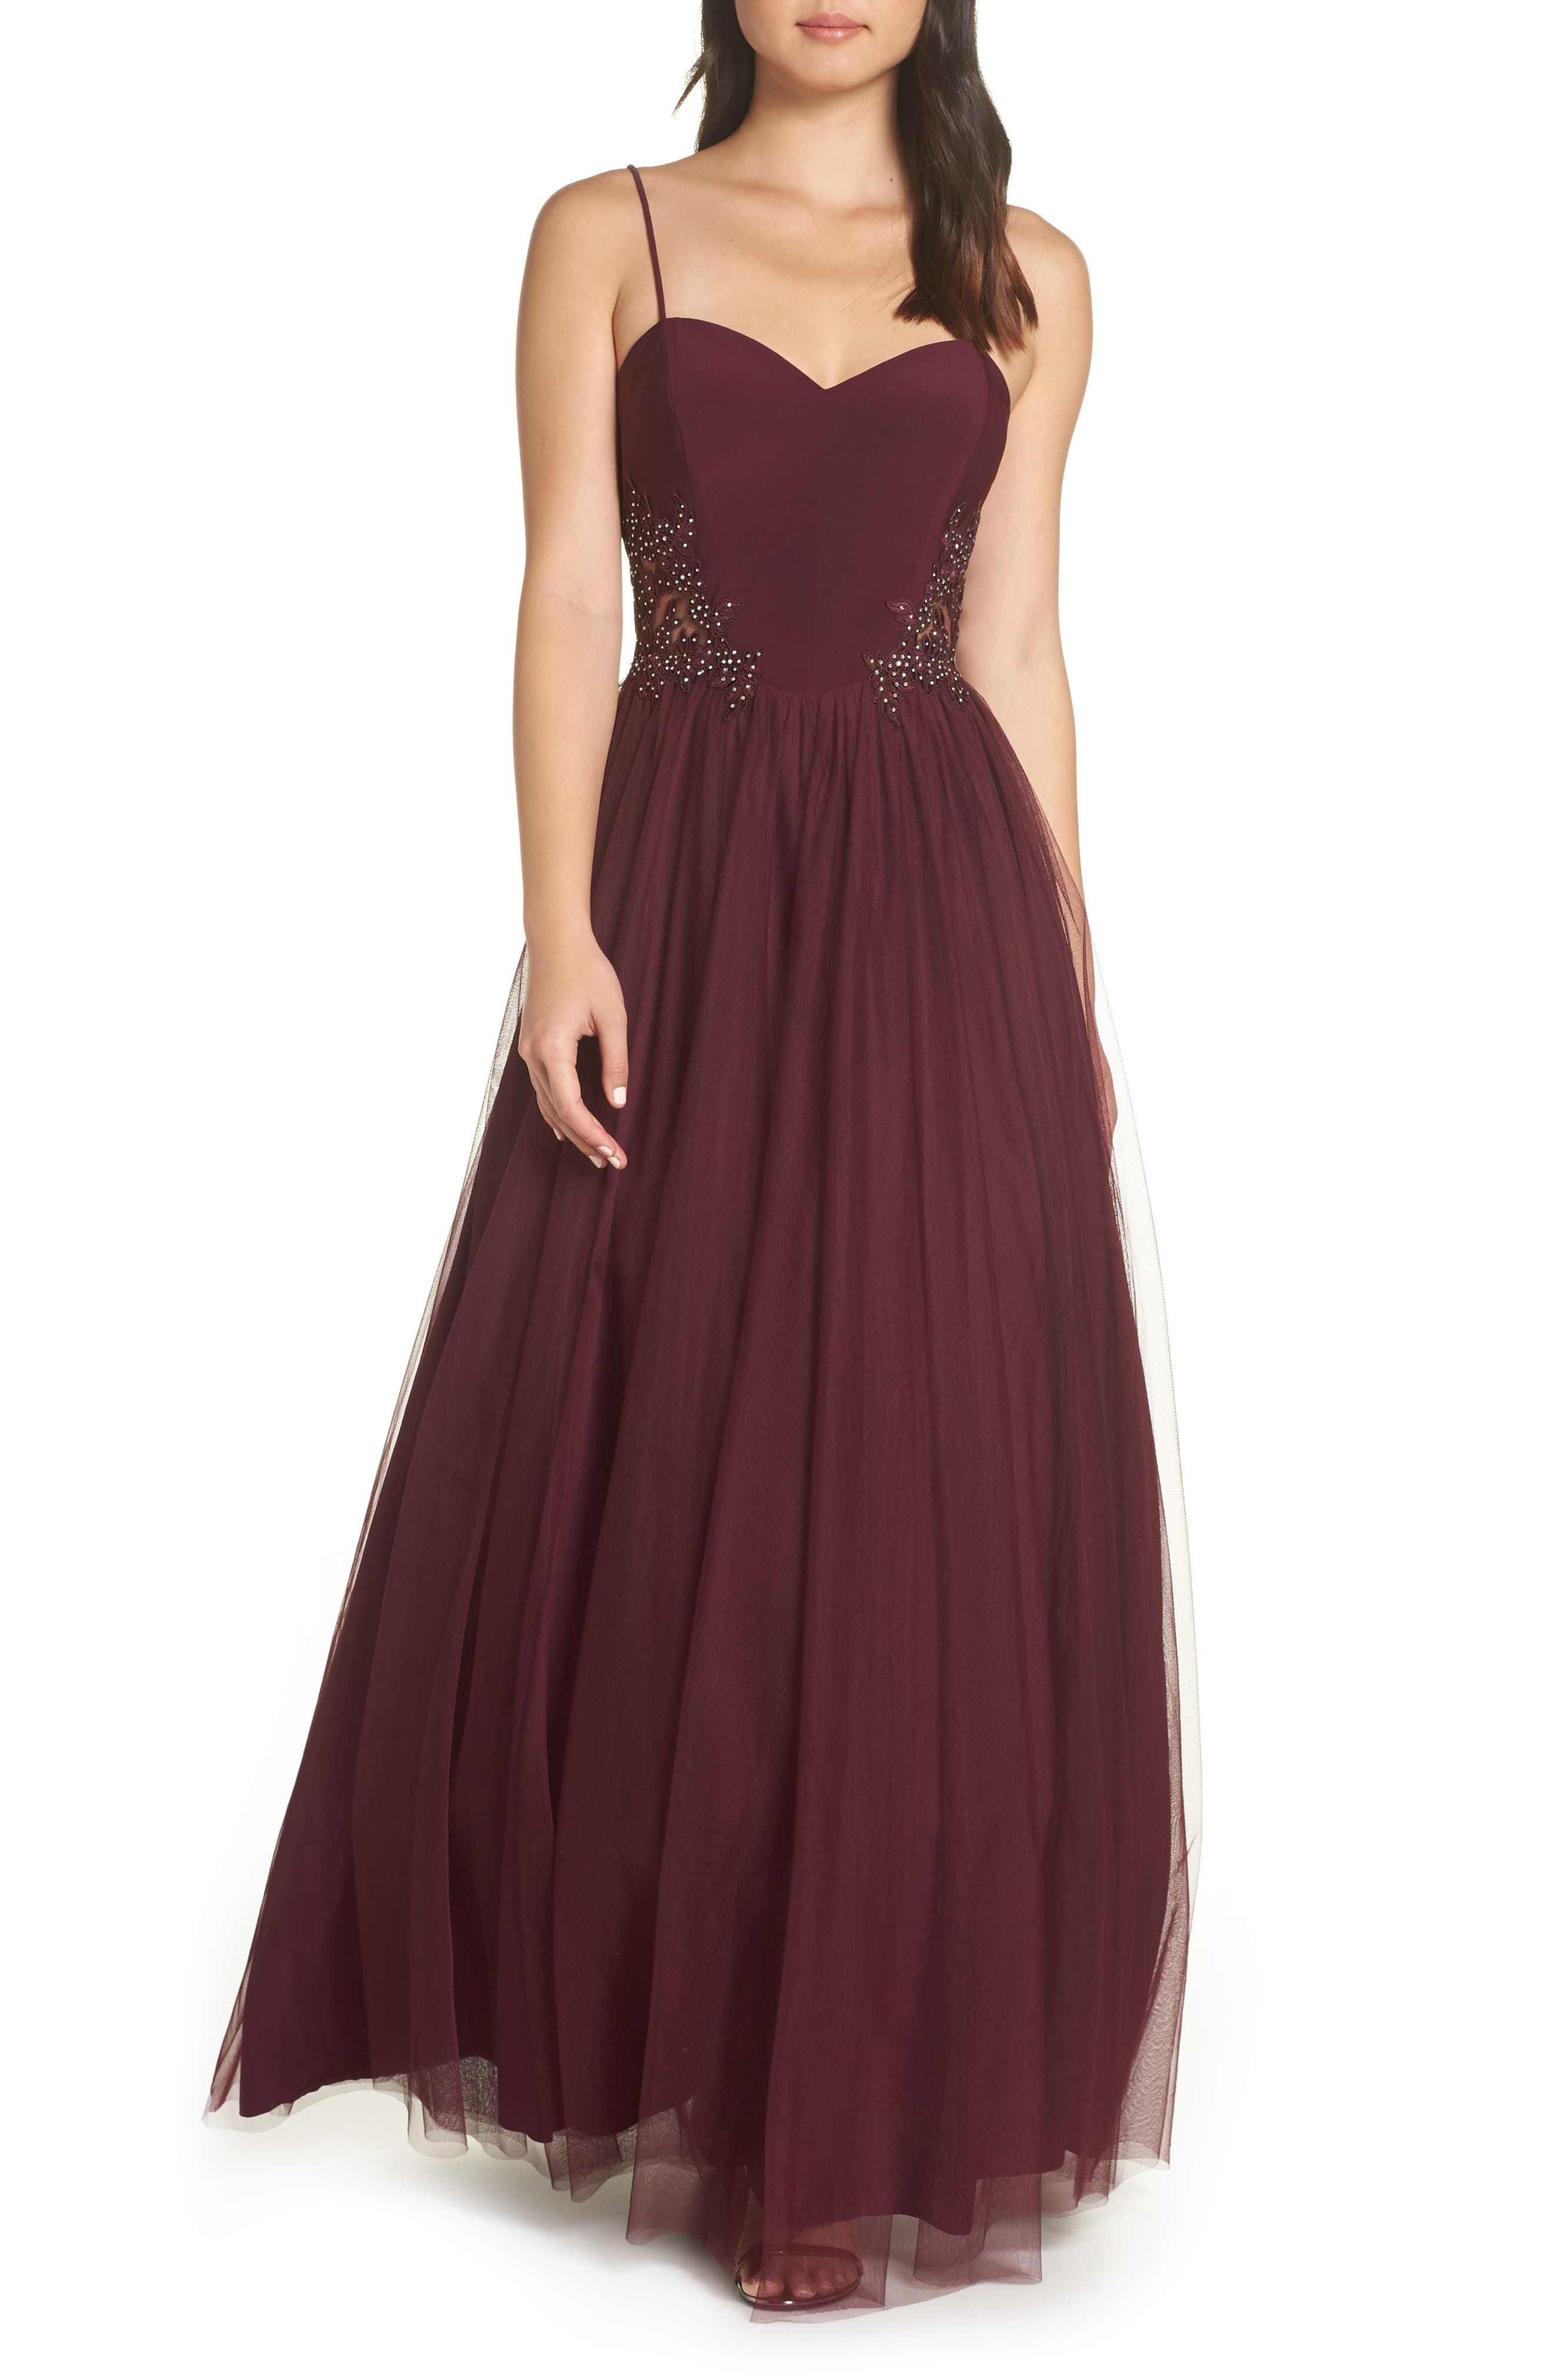 Blondie Nites Sweetheart Chiffon Gown, Burgundy